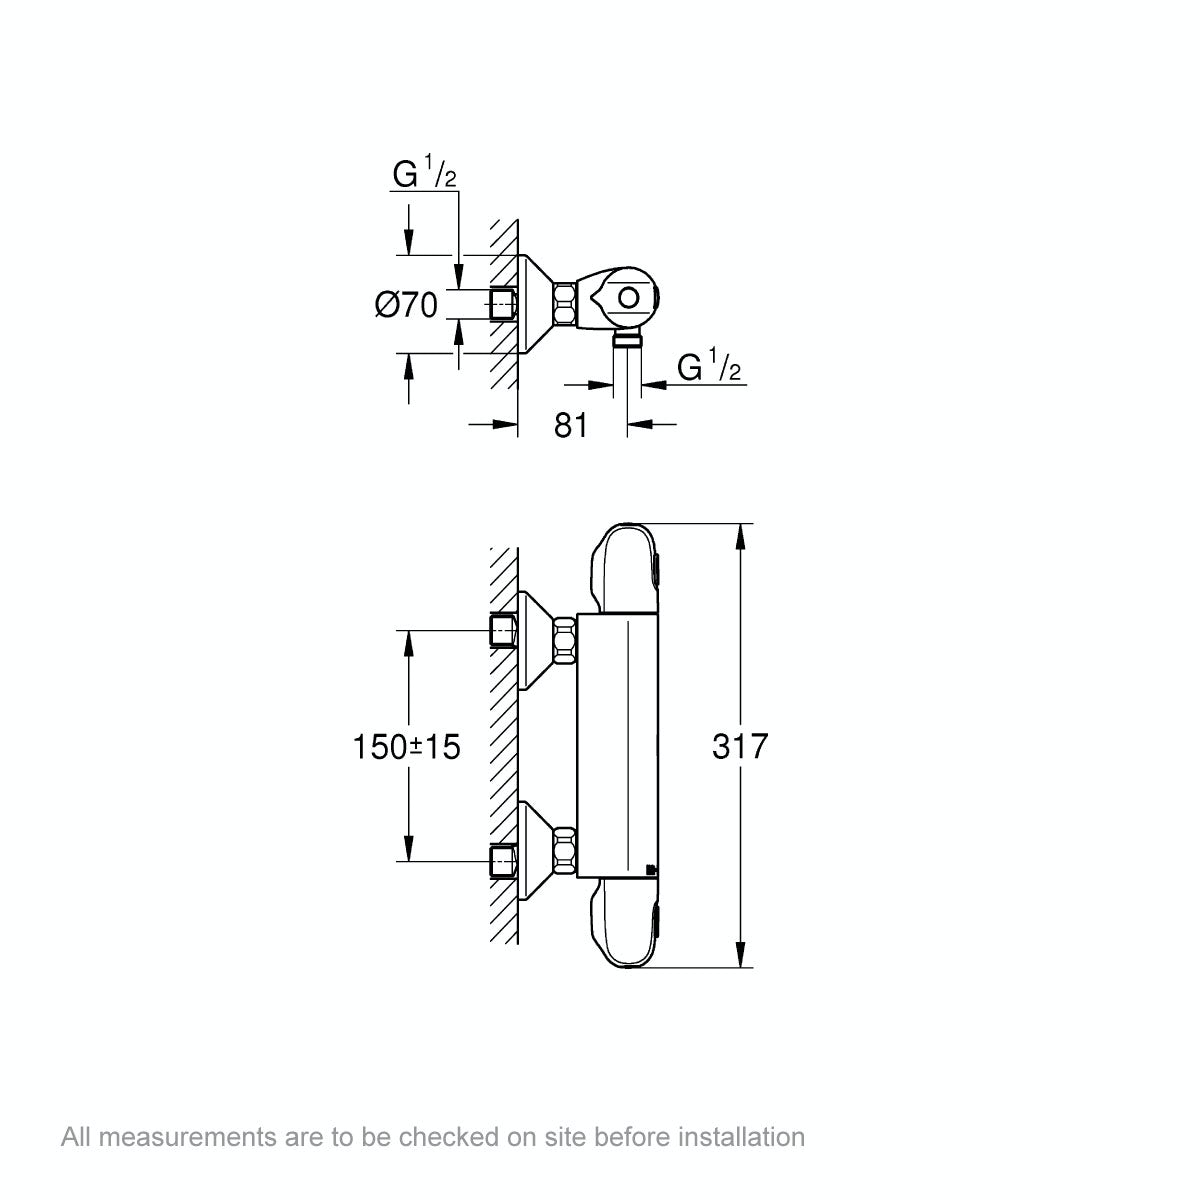 Dimensions for Grohe Grohtherm 1000 thermostatic shower valve